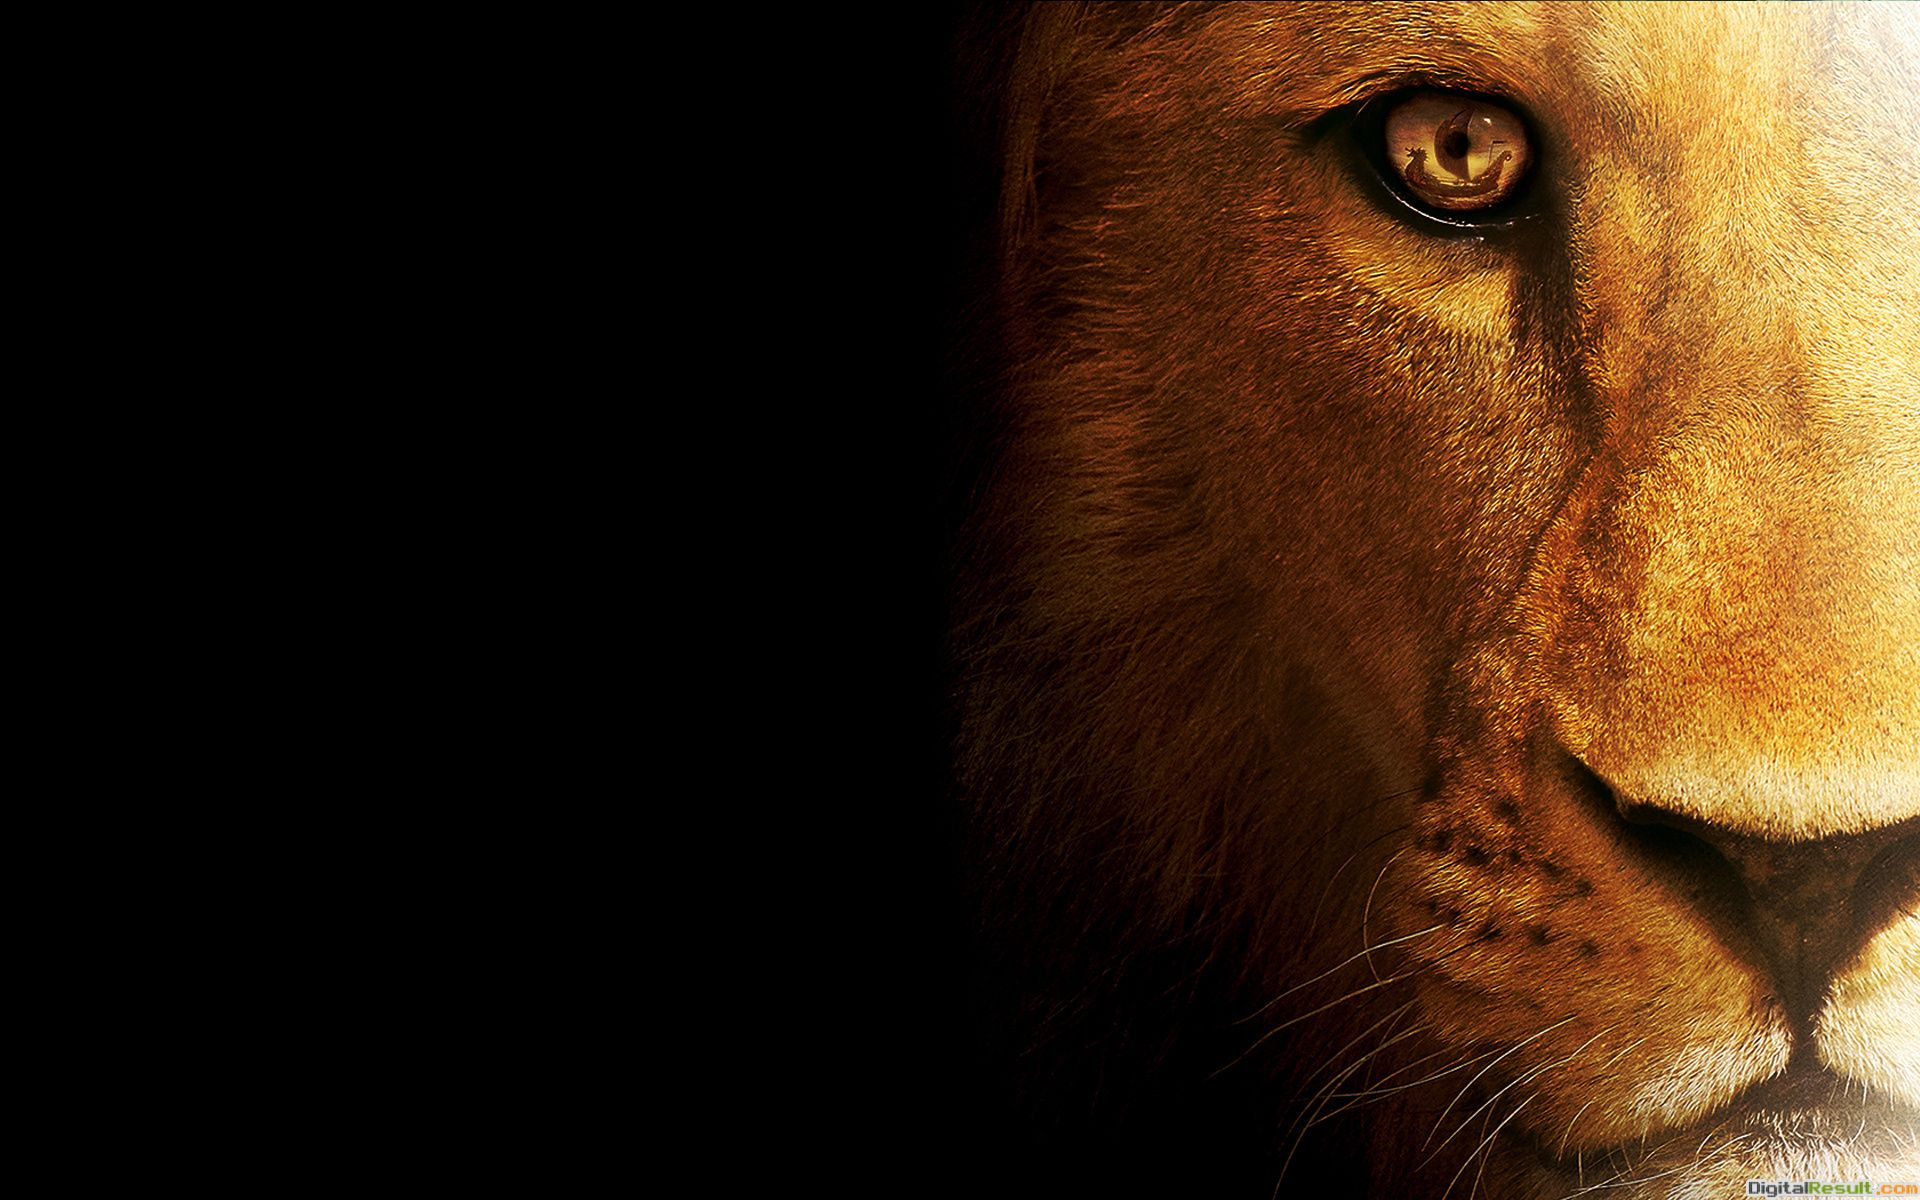 Lion Wallpaper in full high resolution